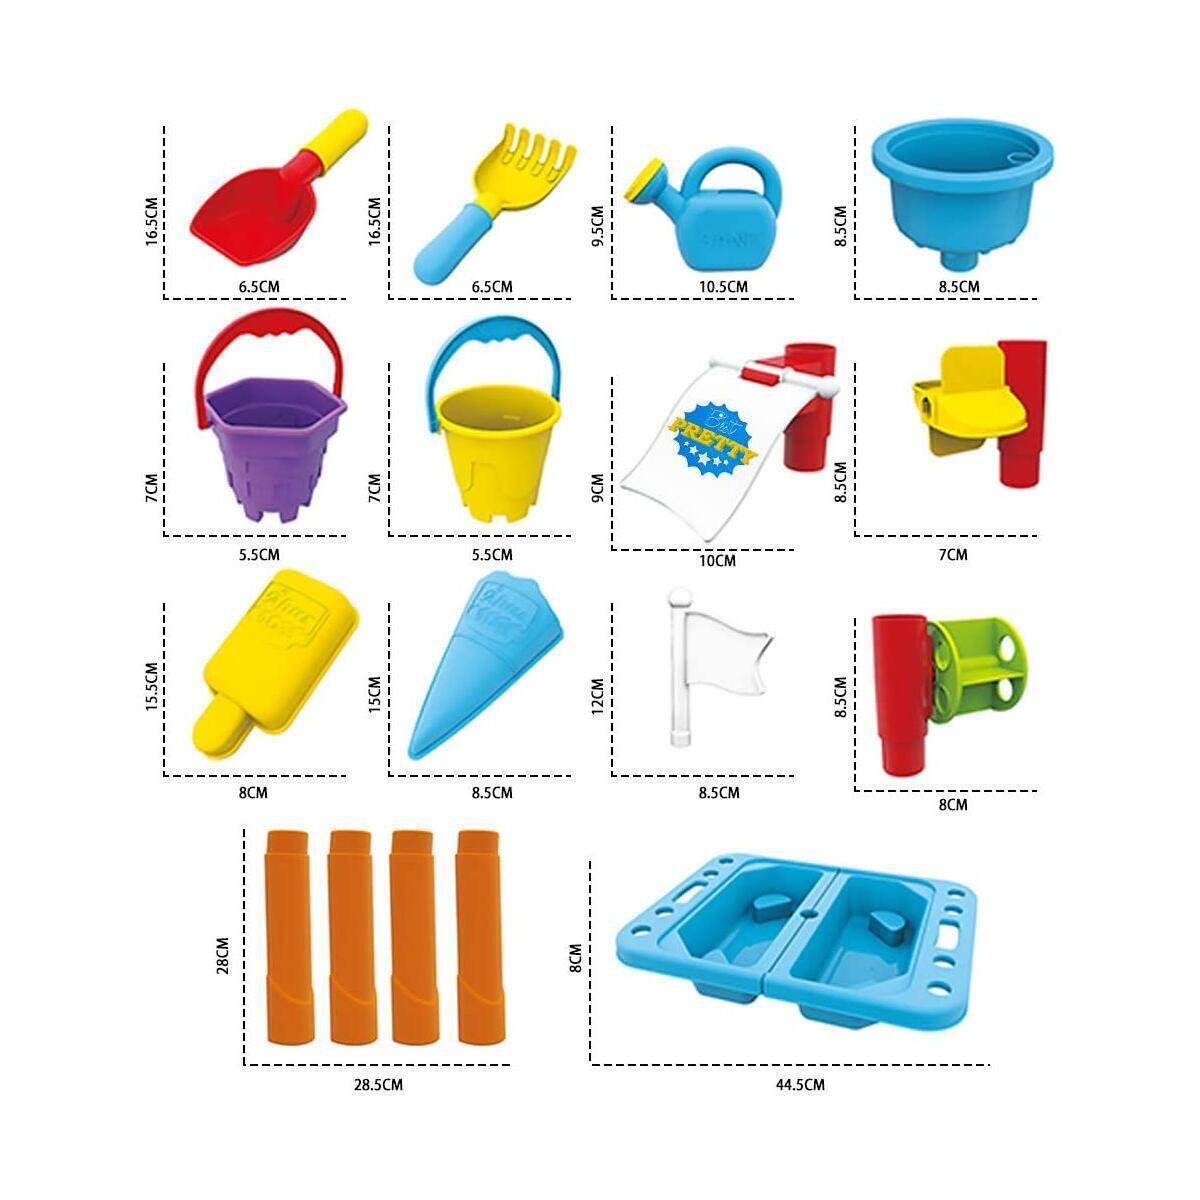 Happytime Kids Sand and Water Table Outdoor Indoor Beach Play Activity Table Sandbox with Cover and 18 Pcs Accessories for Kids, Toddlers and Children